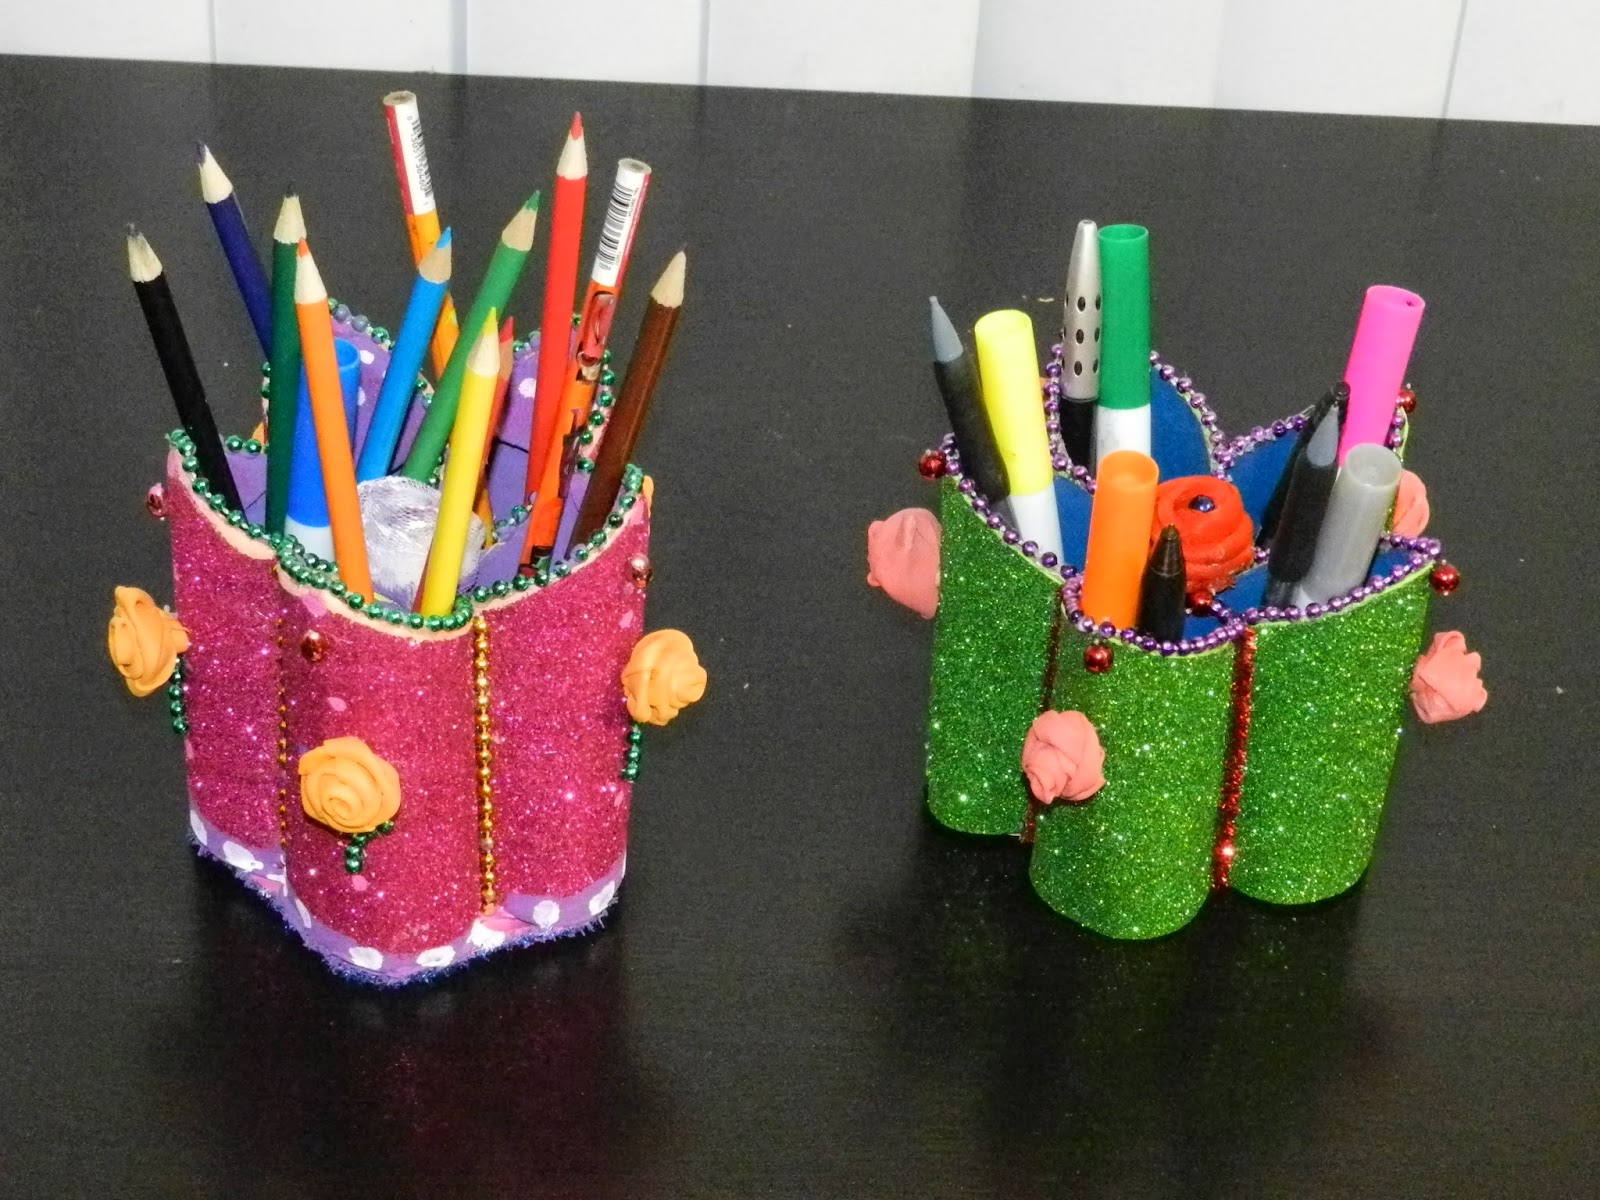 Flower Shaped Pen Stand Holder With Tissue Paper And Foam Sheets